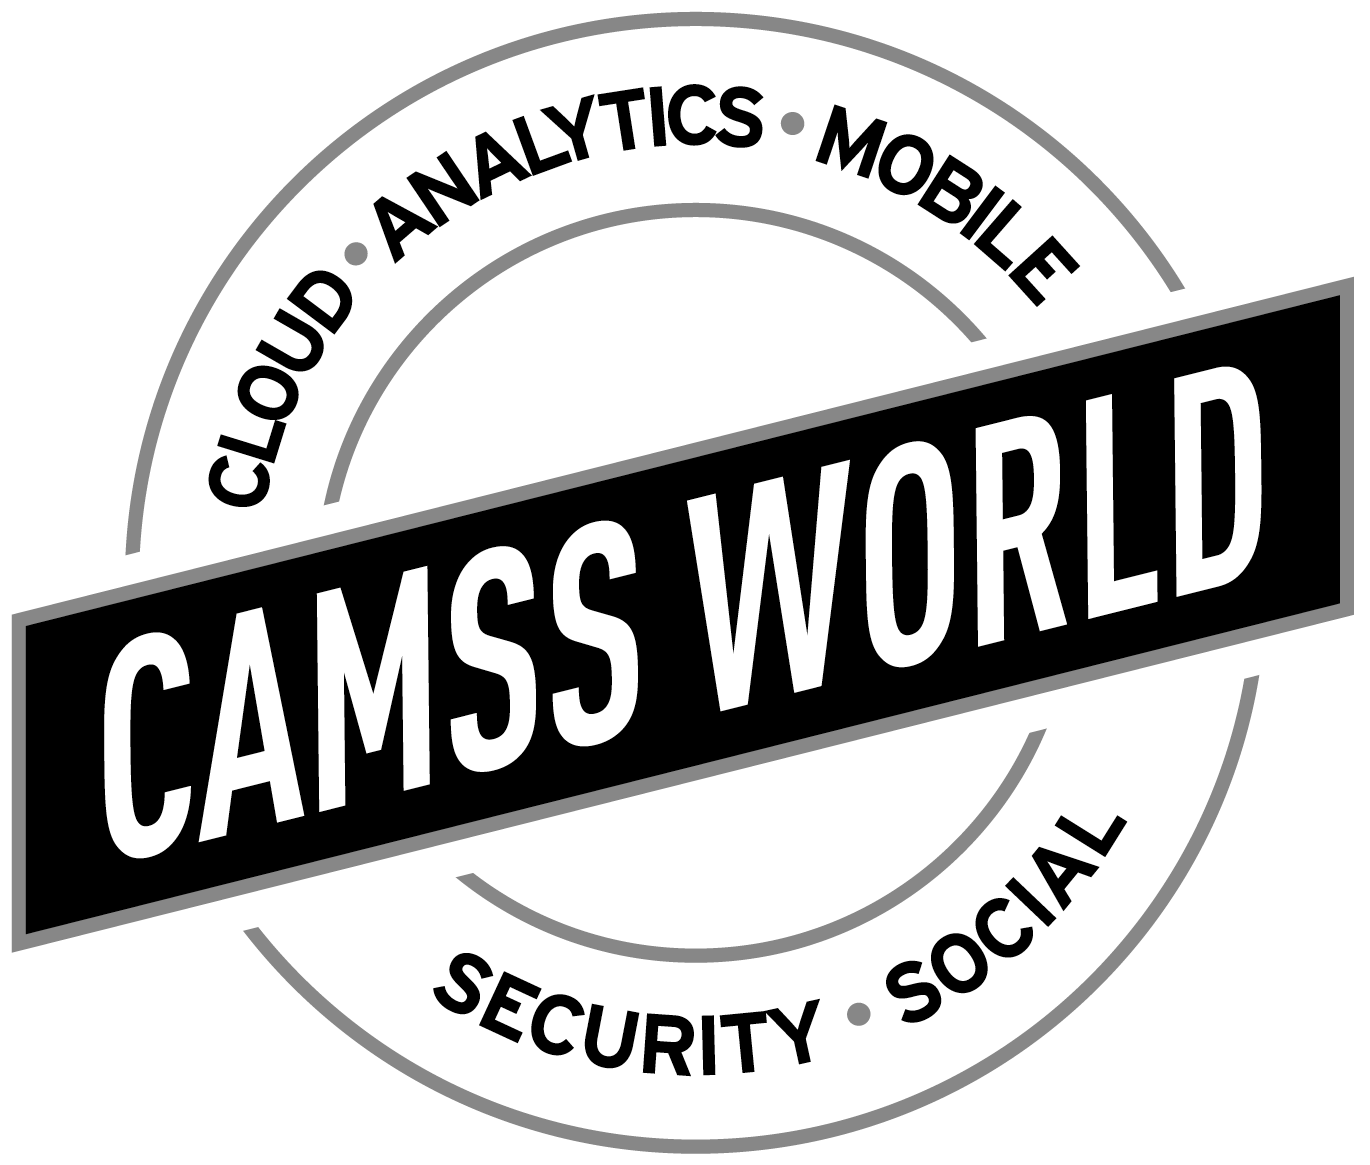 CAMSS World